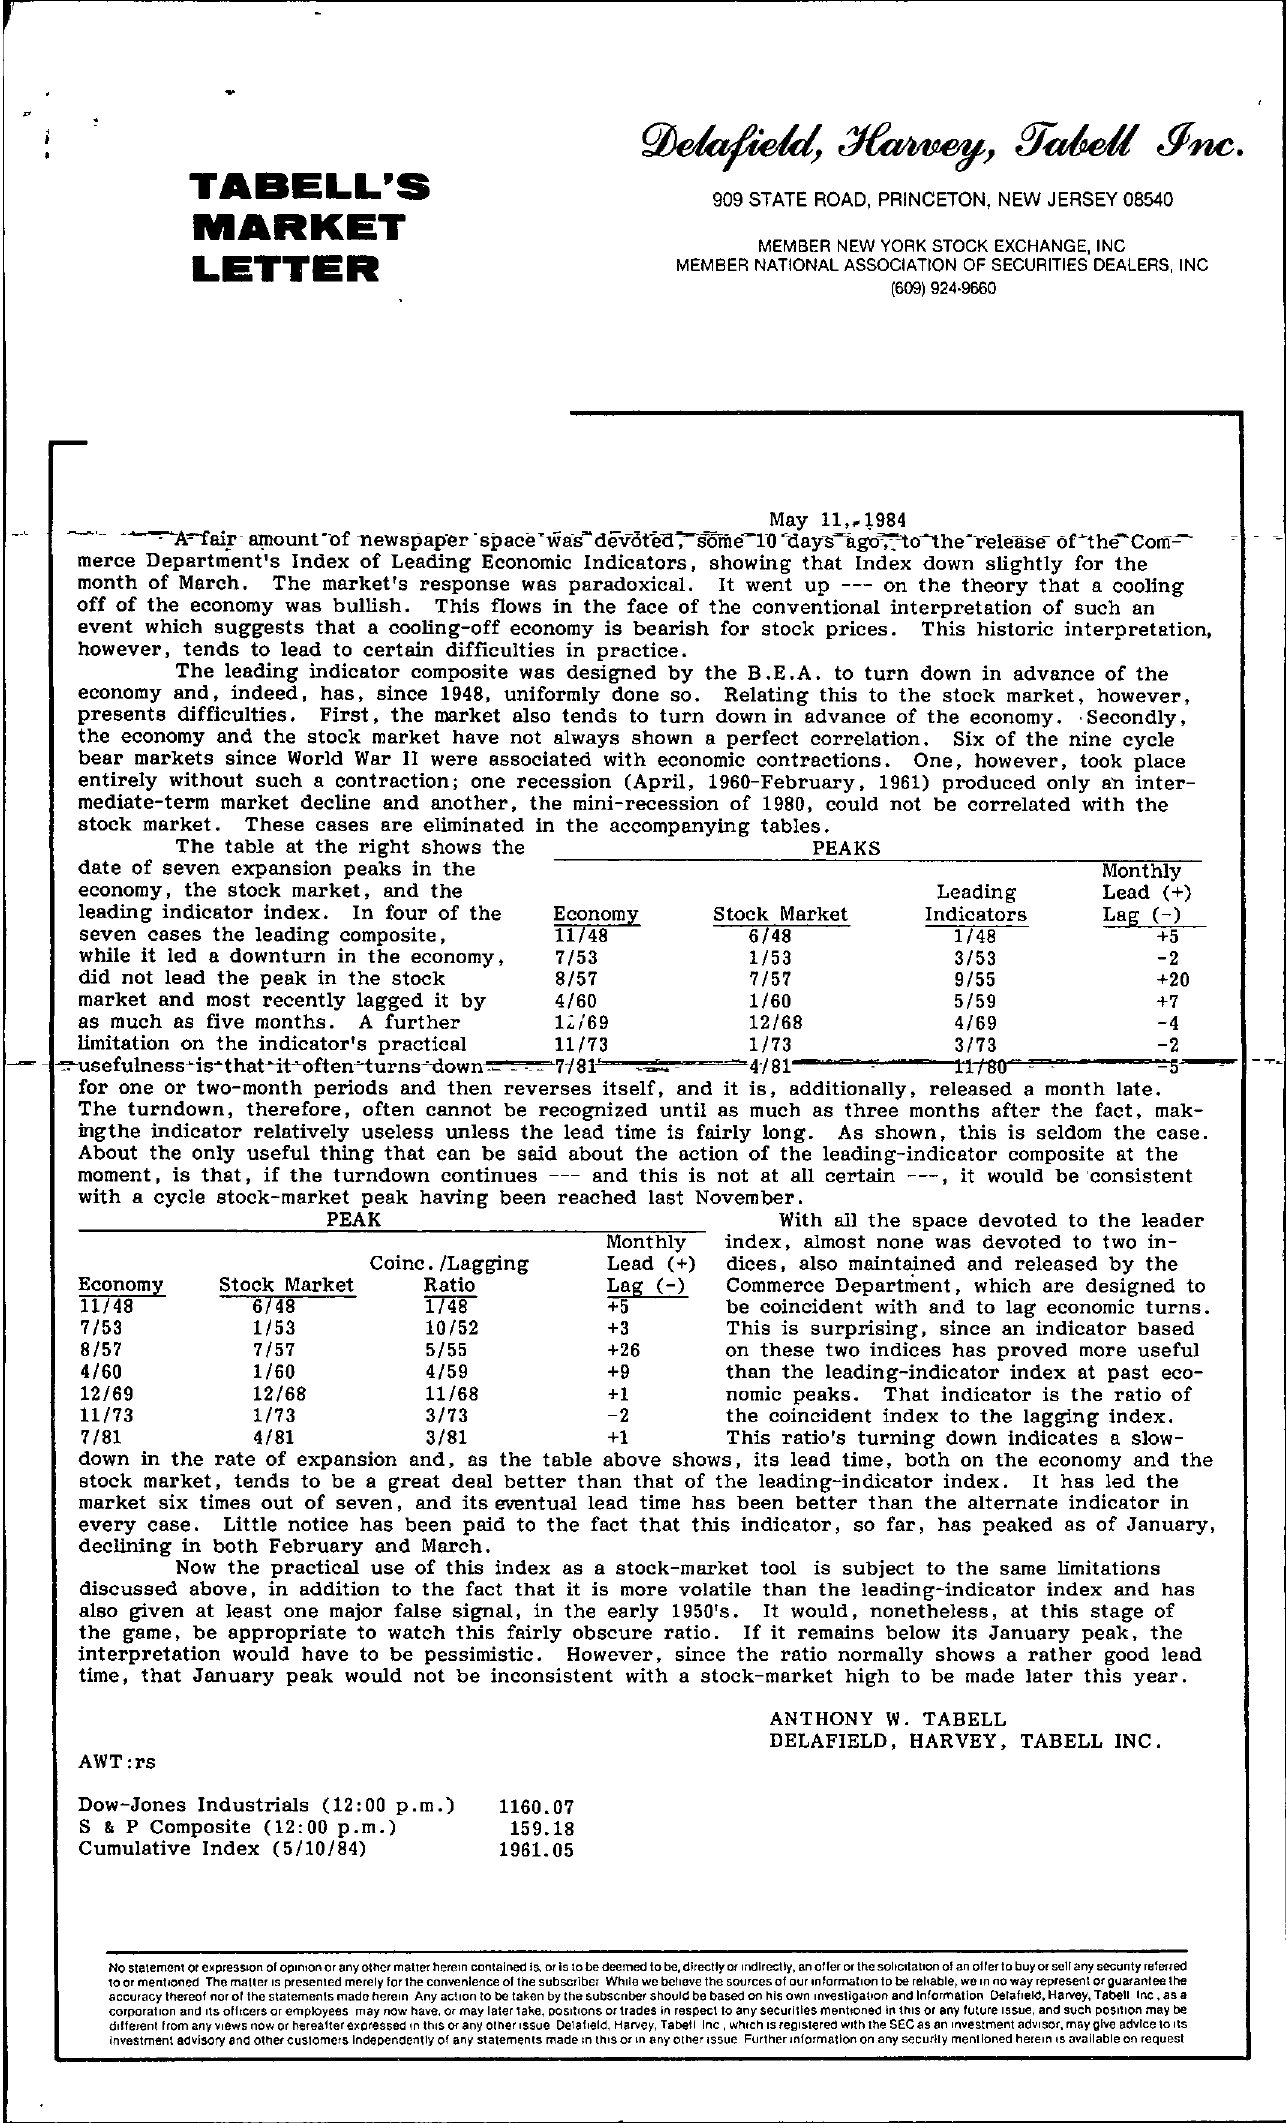 Tabell's Market Letter - May 11, 1984